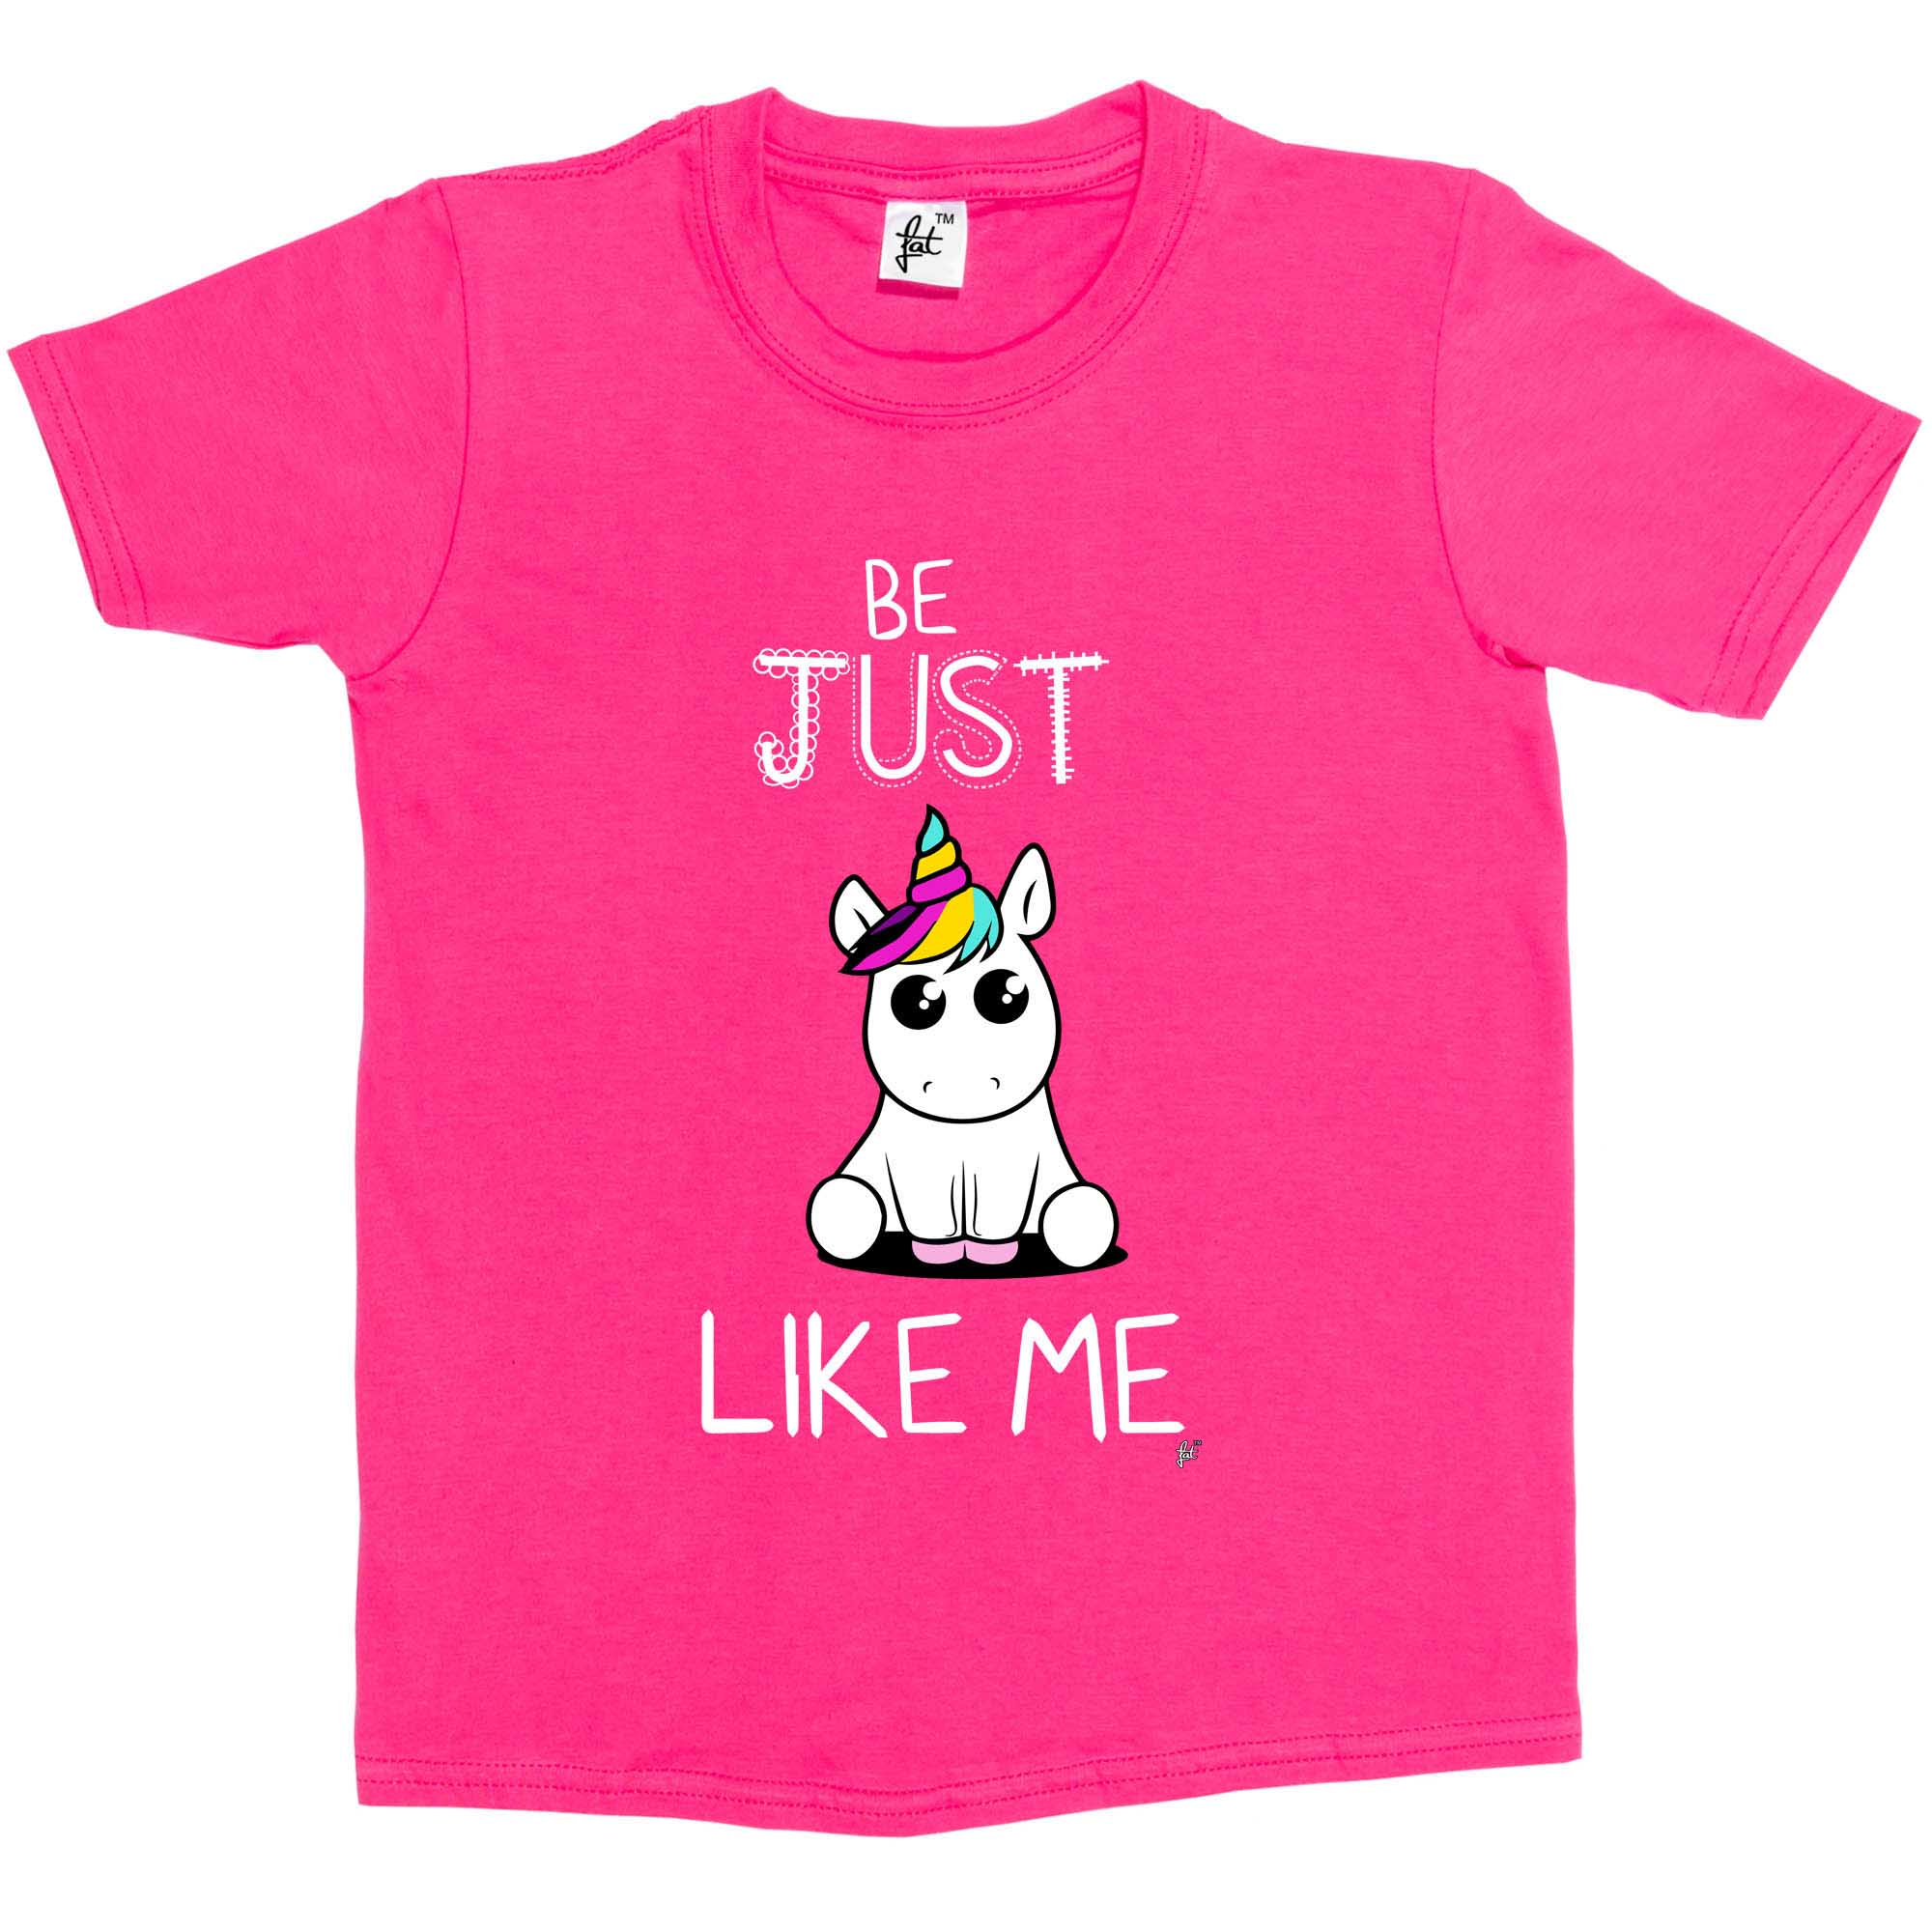 Be Just Like Me Cute Big Eye Unicorn Kids Girls T-Shirt | eBay